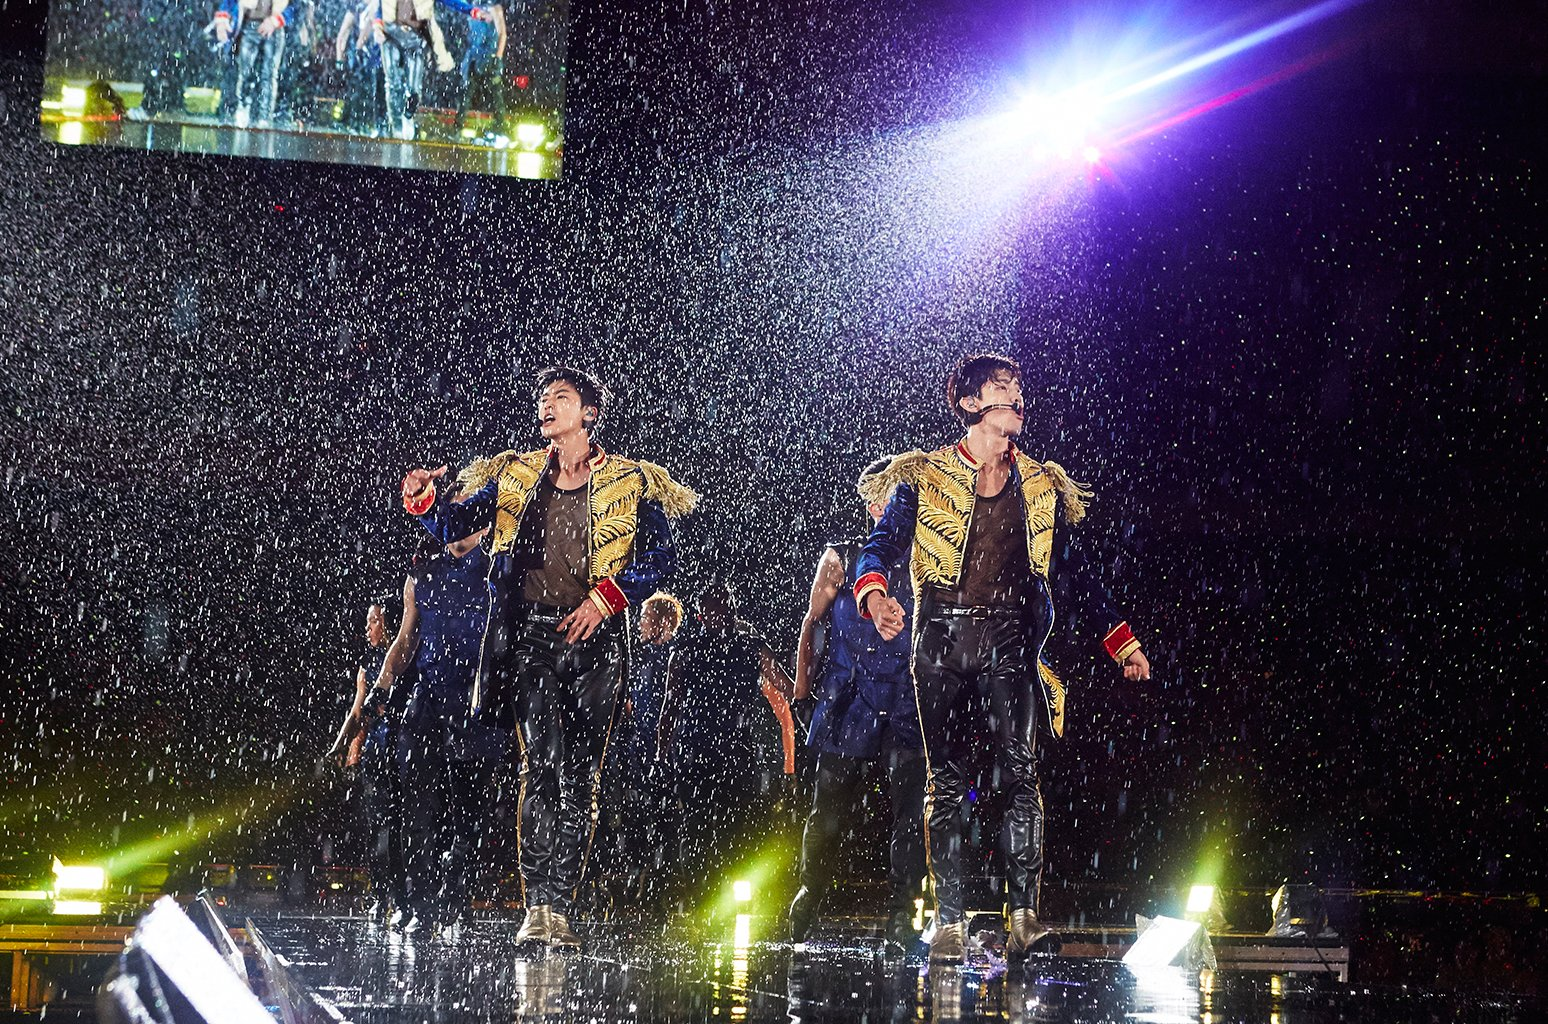 TVXQ sets new record in Japan for K-pop with 1 million tickets sold for 'Begin Again' tour https://t.co/NIkHQhwWFX https://t.co/CWbMtEGLCR